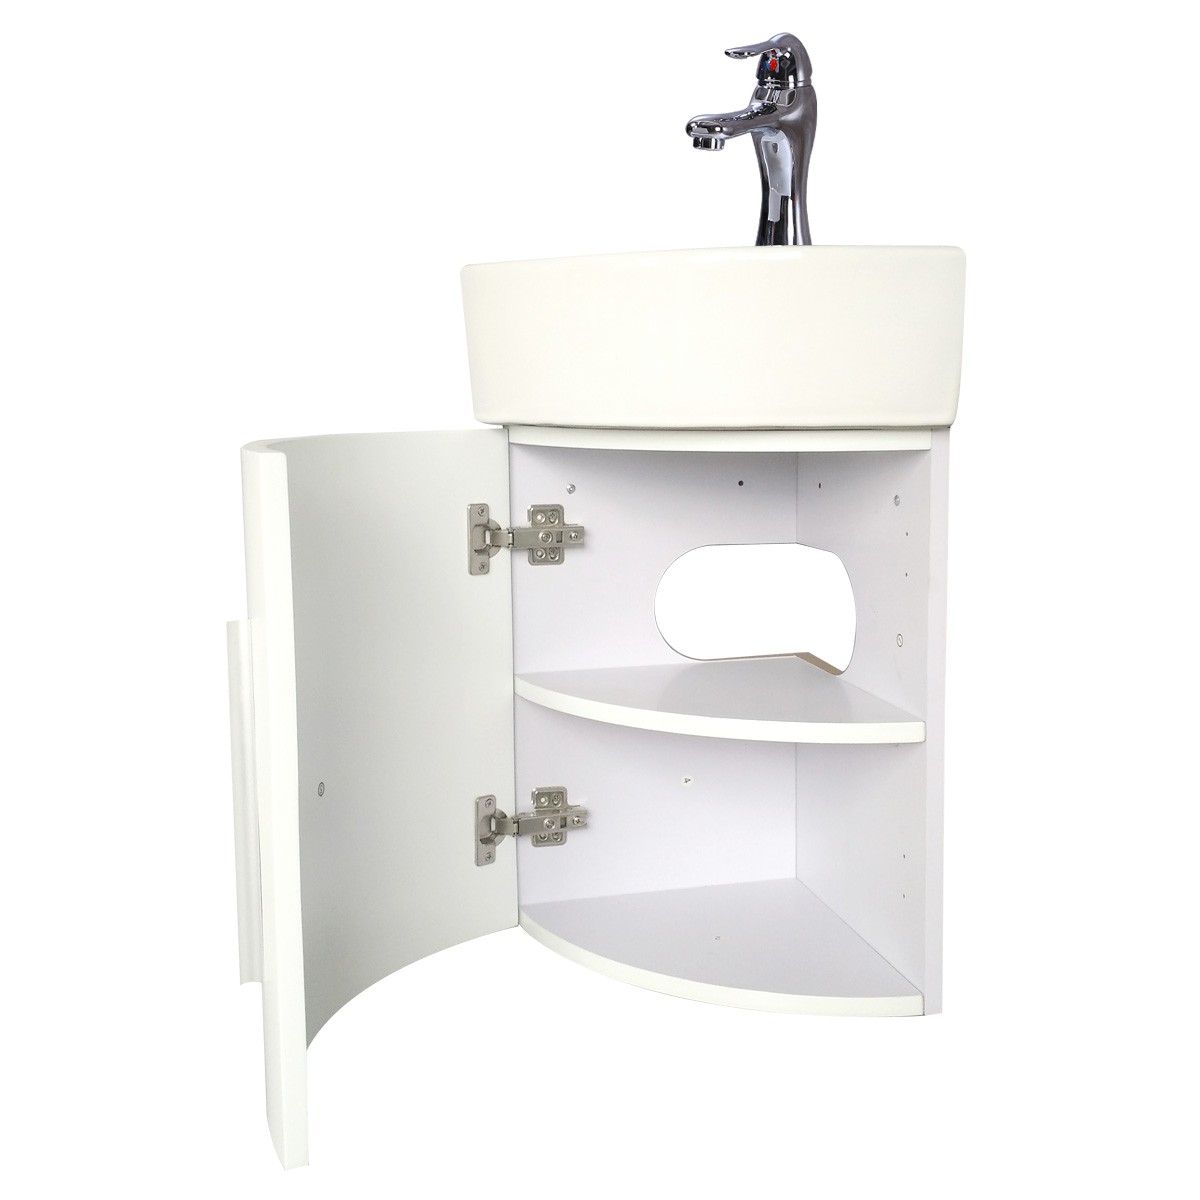 Renovators Supply Corner Bathroom White Vanity Cabinet Sink Faucet Drain Combo Modern Cabinet Vanity Sink Corner Bathroom Cabinet sink Wall Mount Corner Cabinet Sink